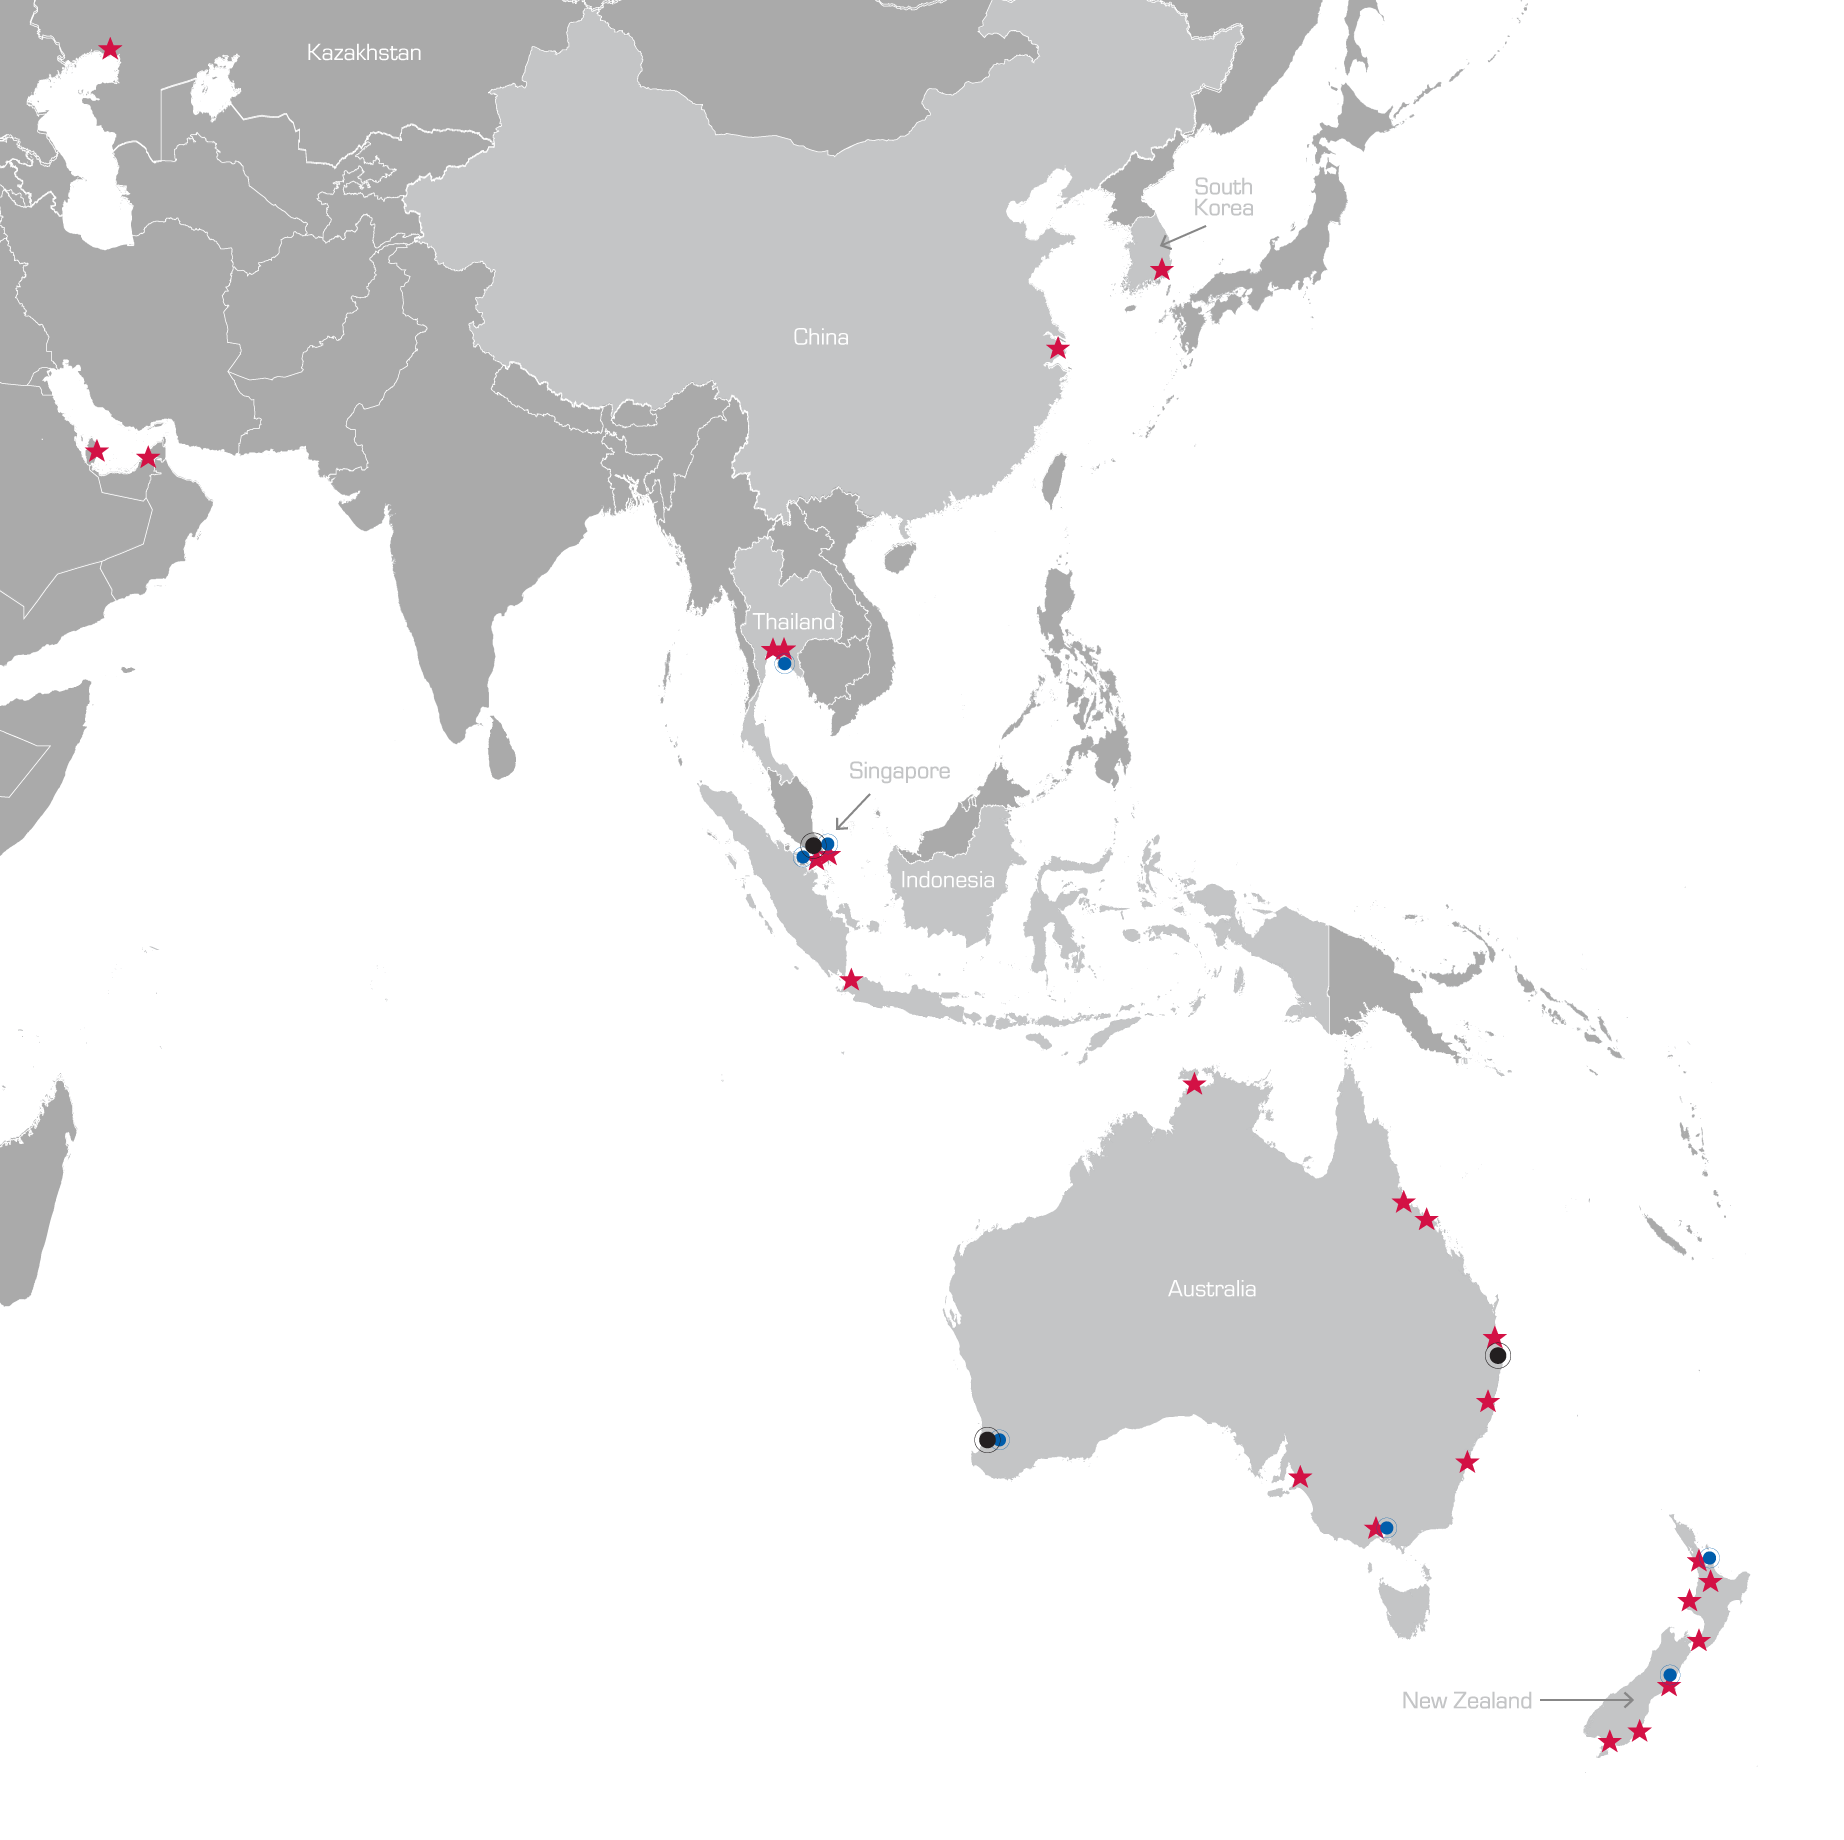 Asia Pacific Locations